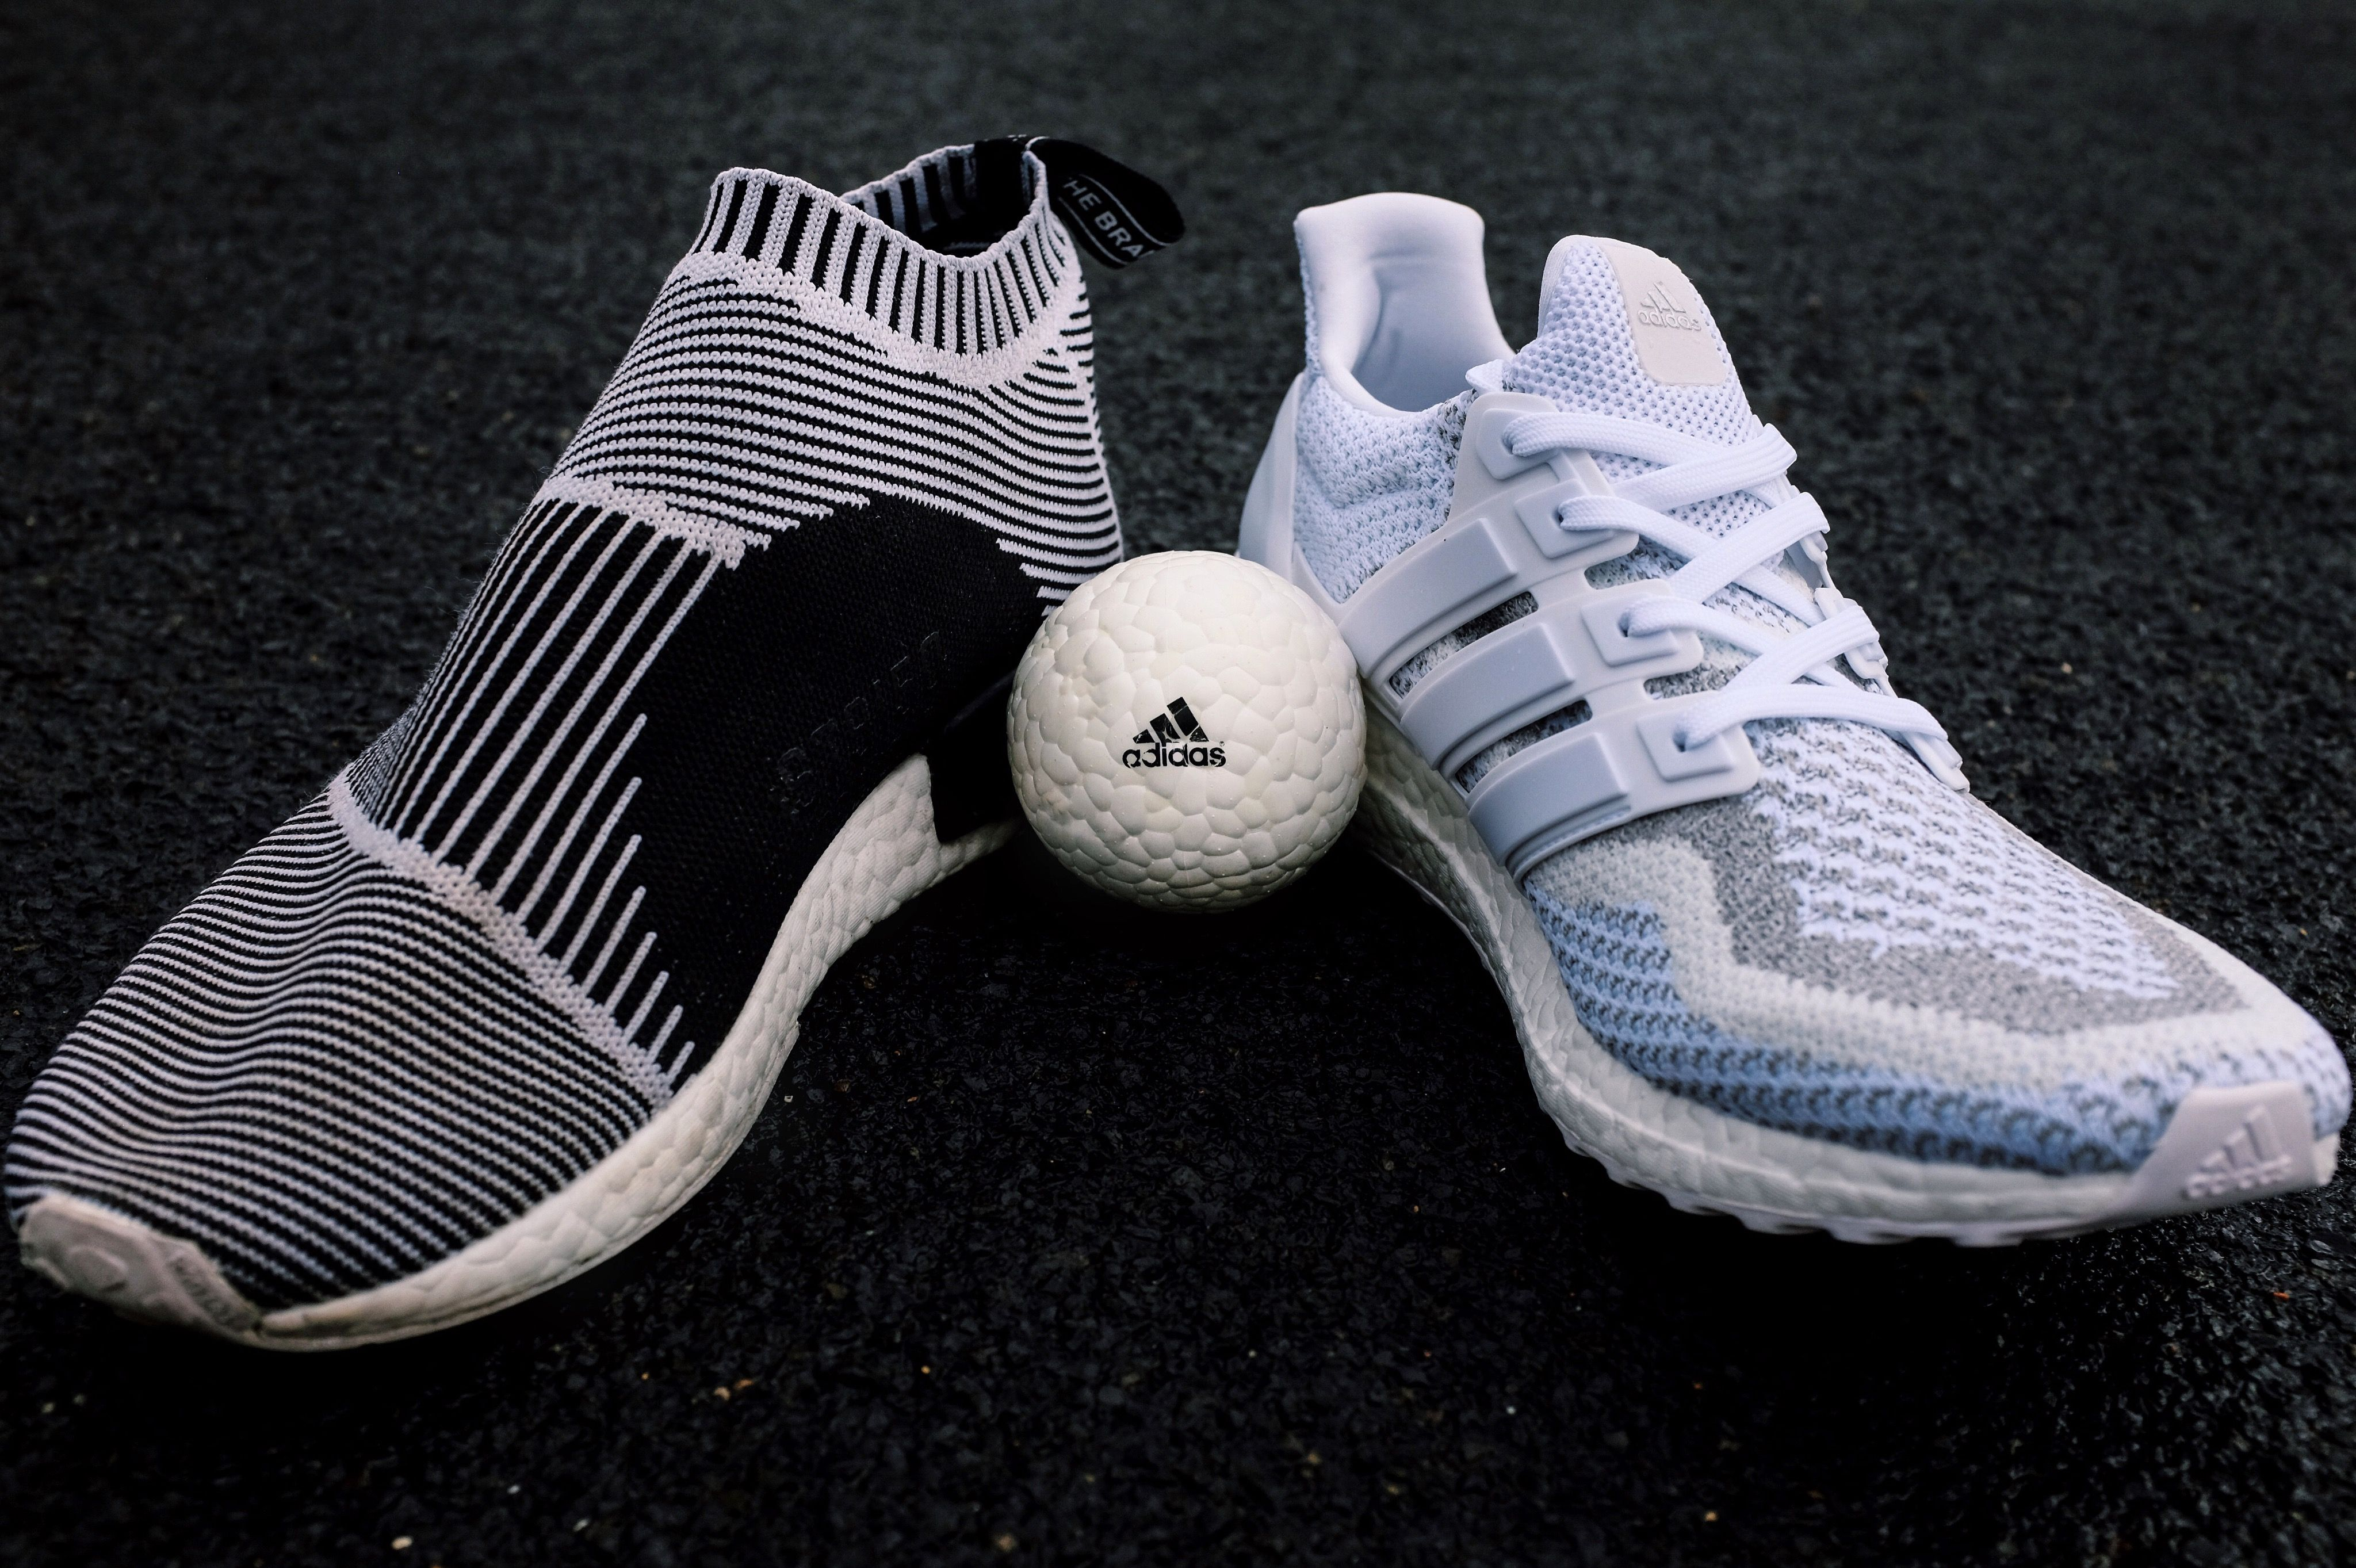 outlet cozy fresh shoes for cheap Adidas boost ball | adidas | Adidas sneakers, Adidas boost ...